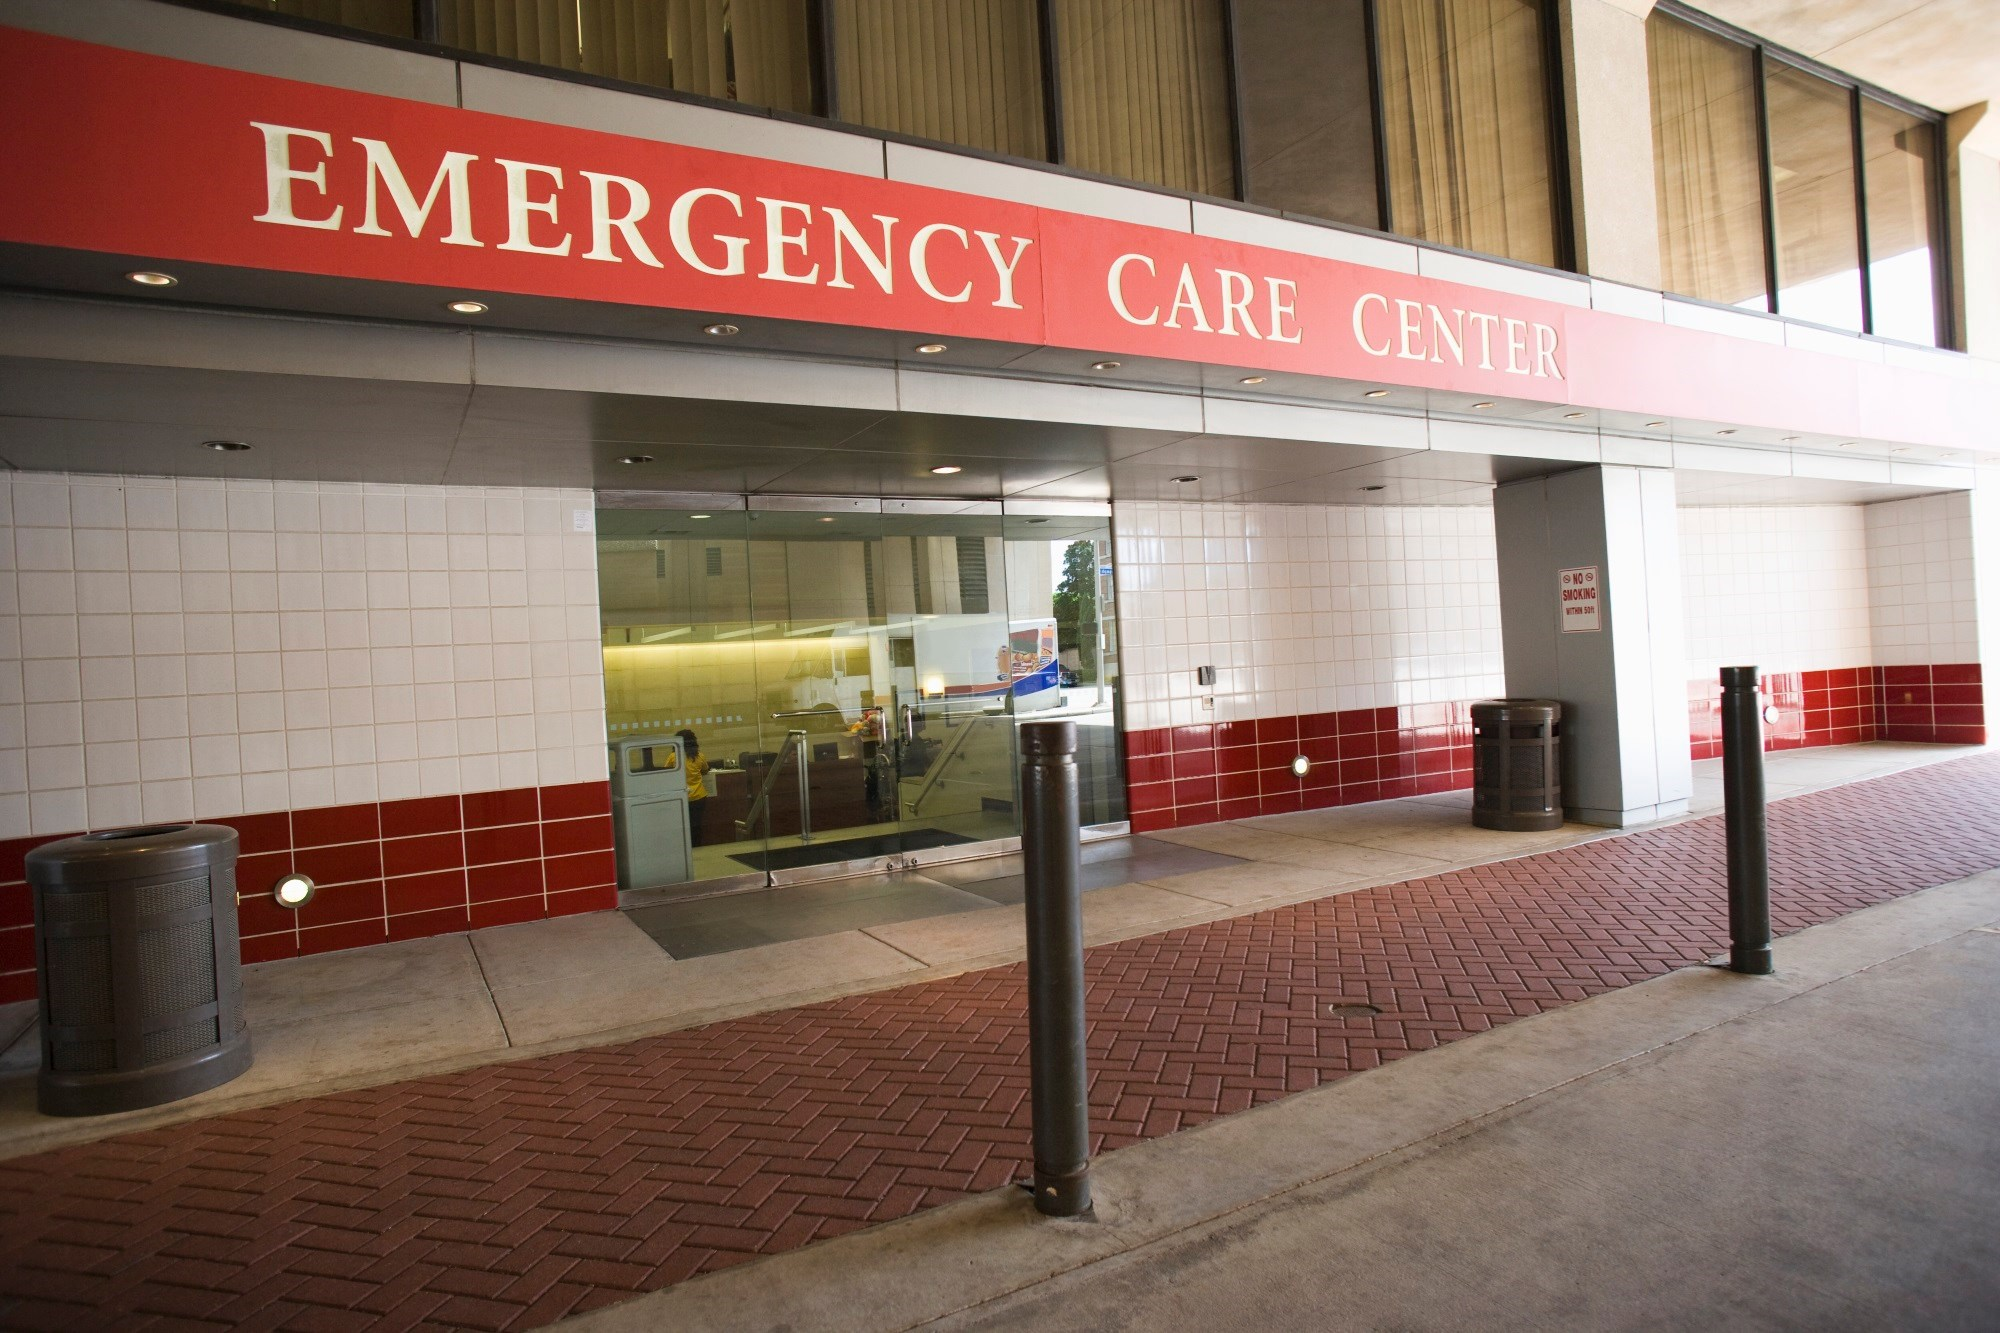 Interpreter Services Critical for Emergency Care